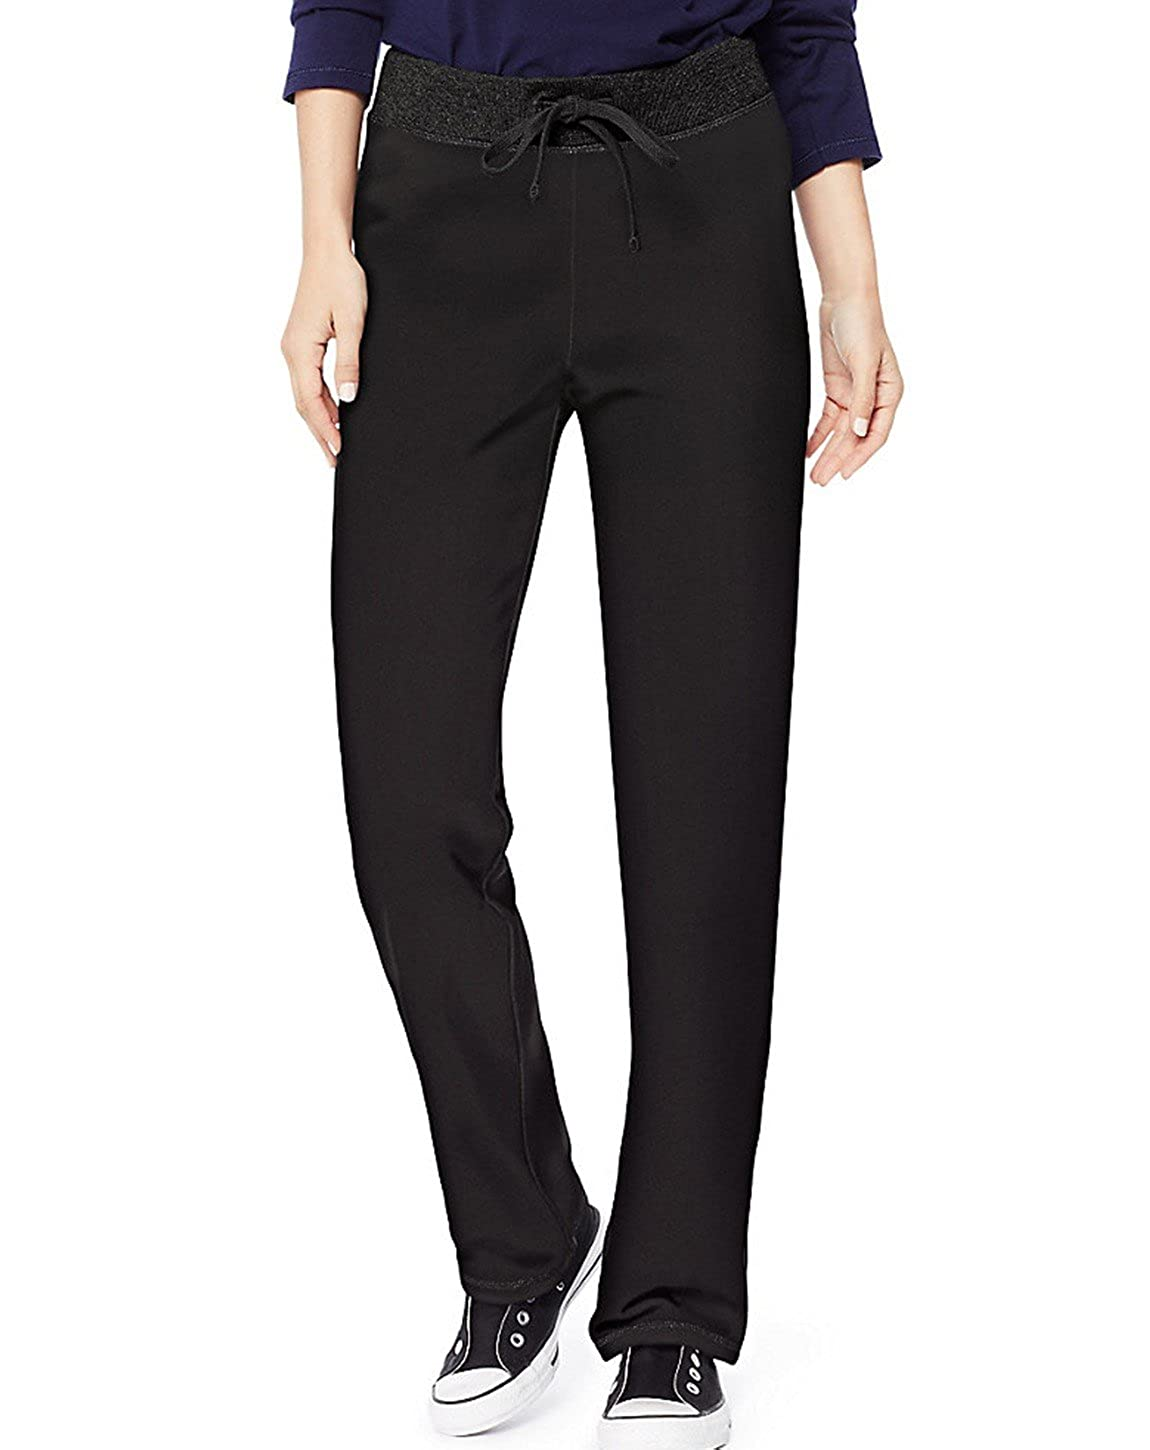 Hanes Women's French Terry Pant Hanes Women's Activewear O4694